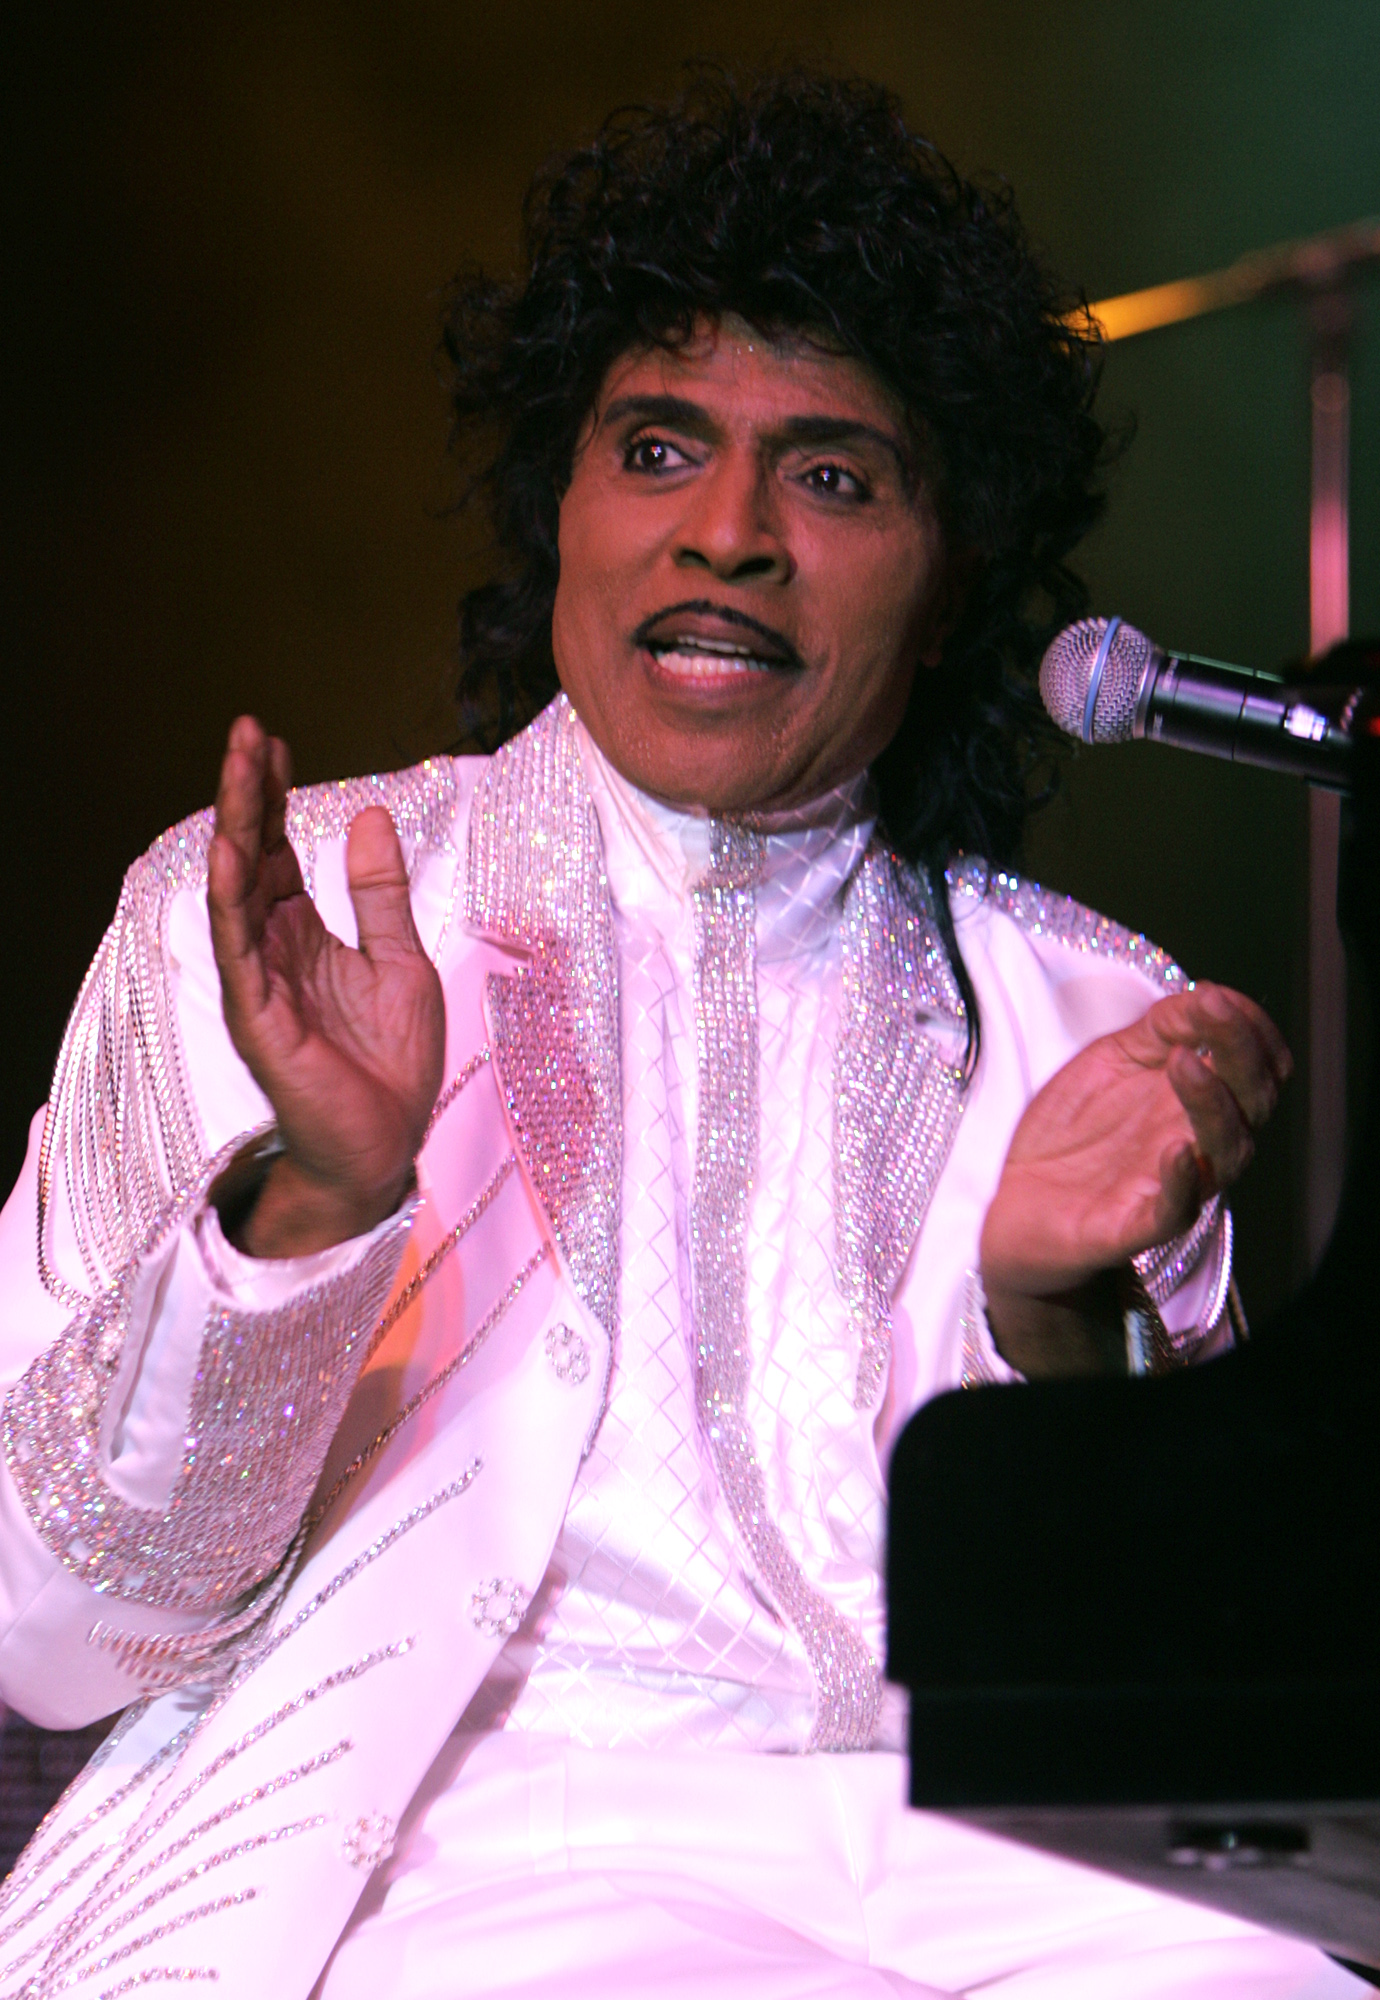 (Highland)–Little Richard sits down to the piano for his first number at the San Manuel Indian Bing